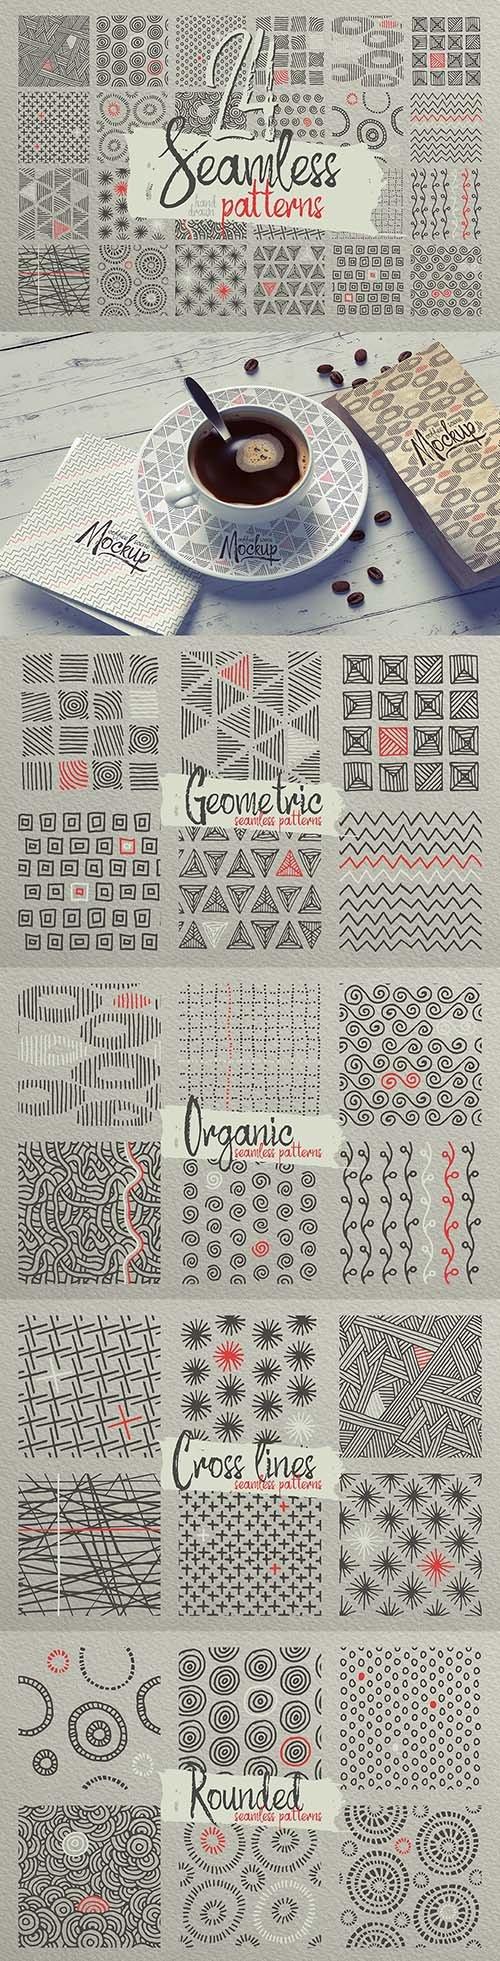 24 Hand Drawn Patterns